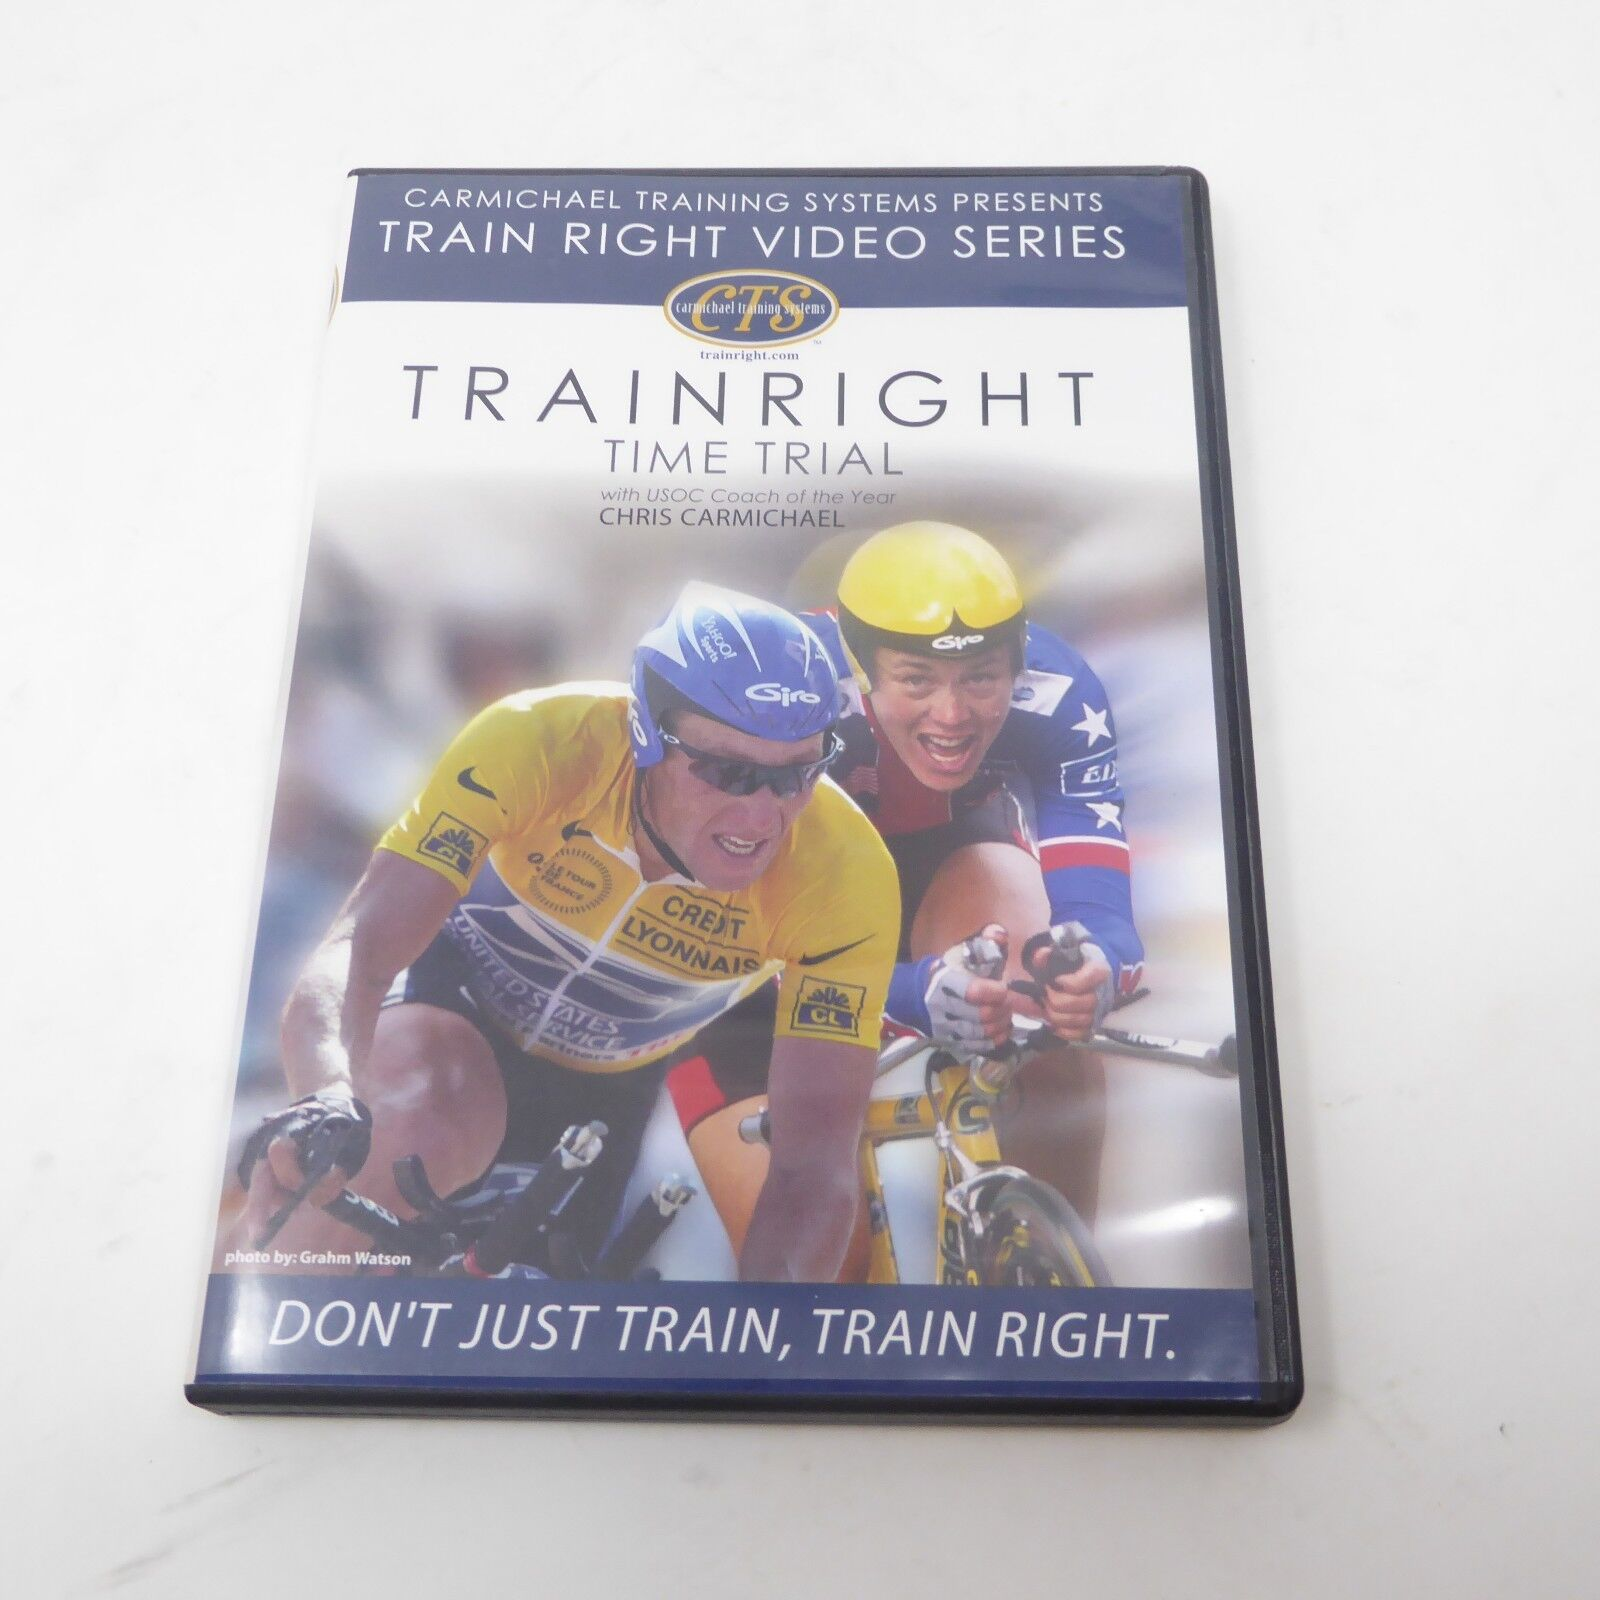 Carmichael Training System Train Right - Time Trial DVD Bicycle Cycling  (Very Good - 3.95 USD)